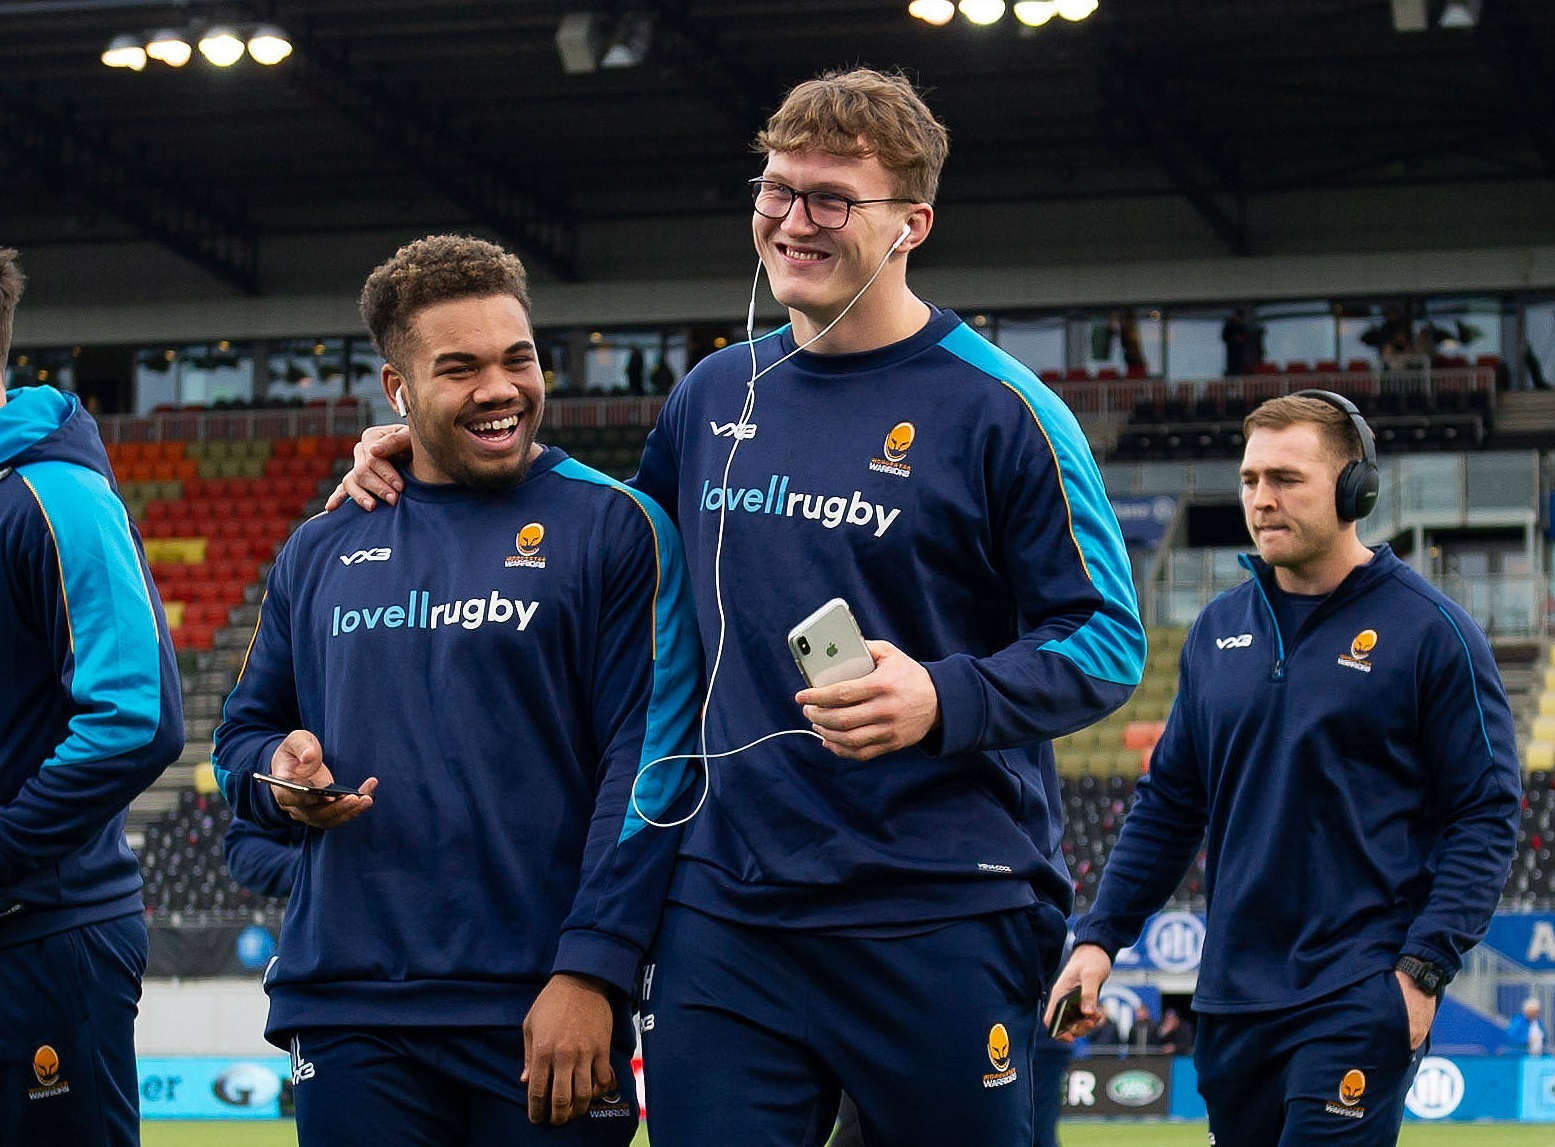 Ollie Lawrence and Ted Hill of Worcester Warriors - Mandatory byline: Patrick Khachfe/JMP - 07966 386802 - 29/12/2018 - RUGBY UNION - Allianz Park - London, England - Saracens v Worcester Warriors - Gallagher Premiership Rugby